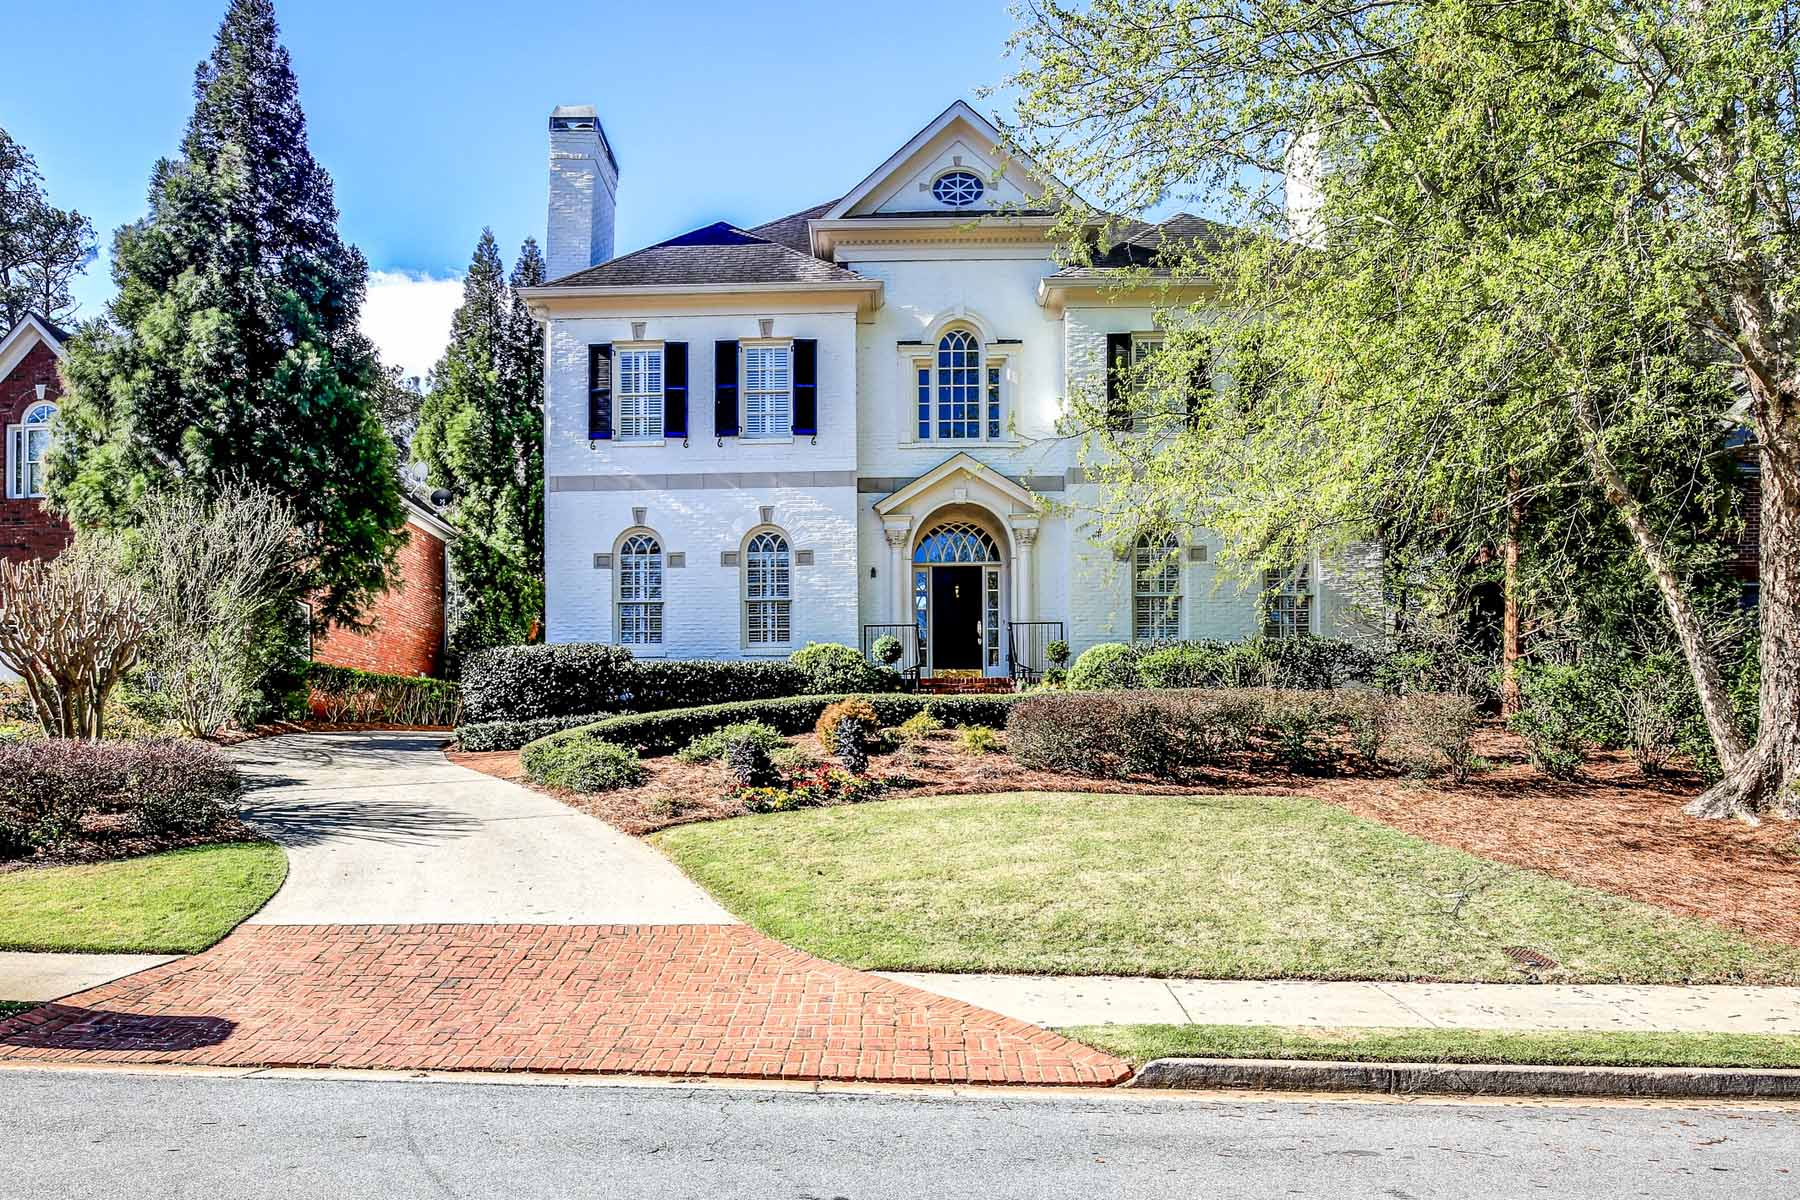 Single Family Home for Sale at Elegantly Sited on a Cul-de-Sac 1814 Grist Stone Court NE Druid Hills, Atlanta, Georgia, 30307 United States